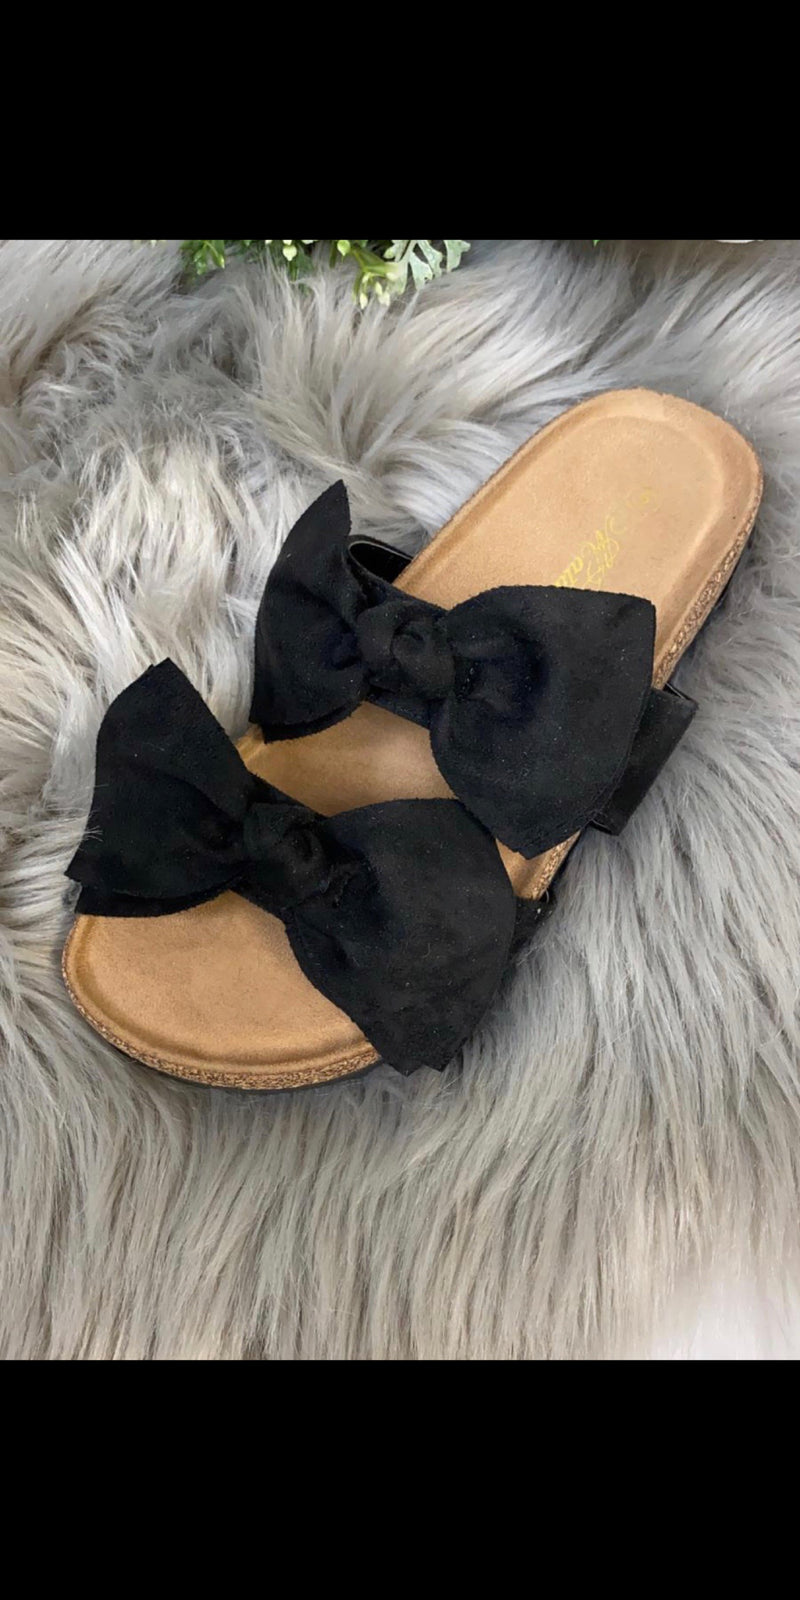 Brogan Black Bow Sandals